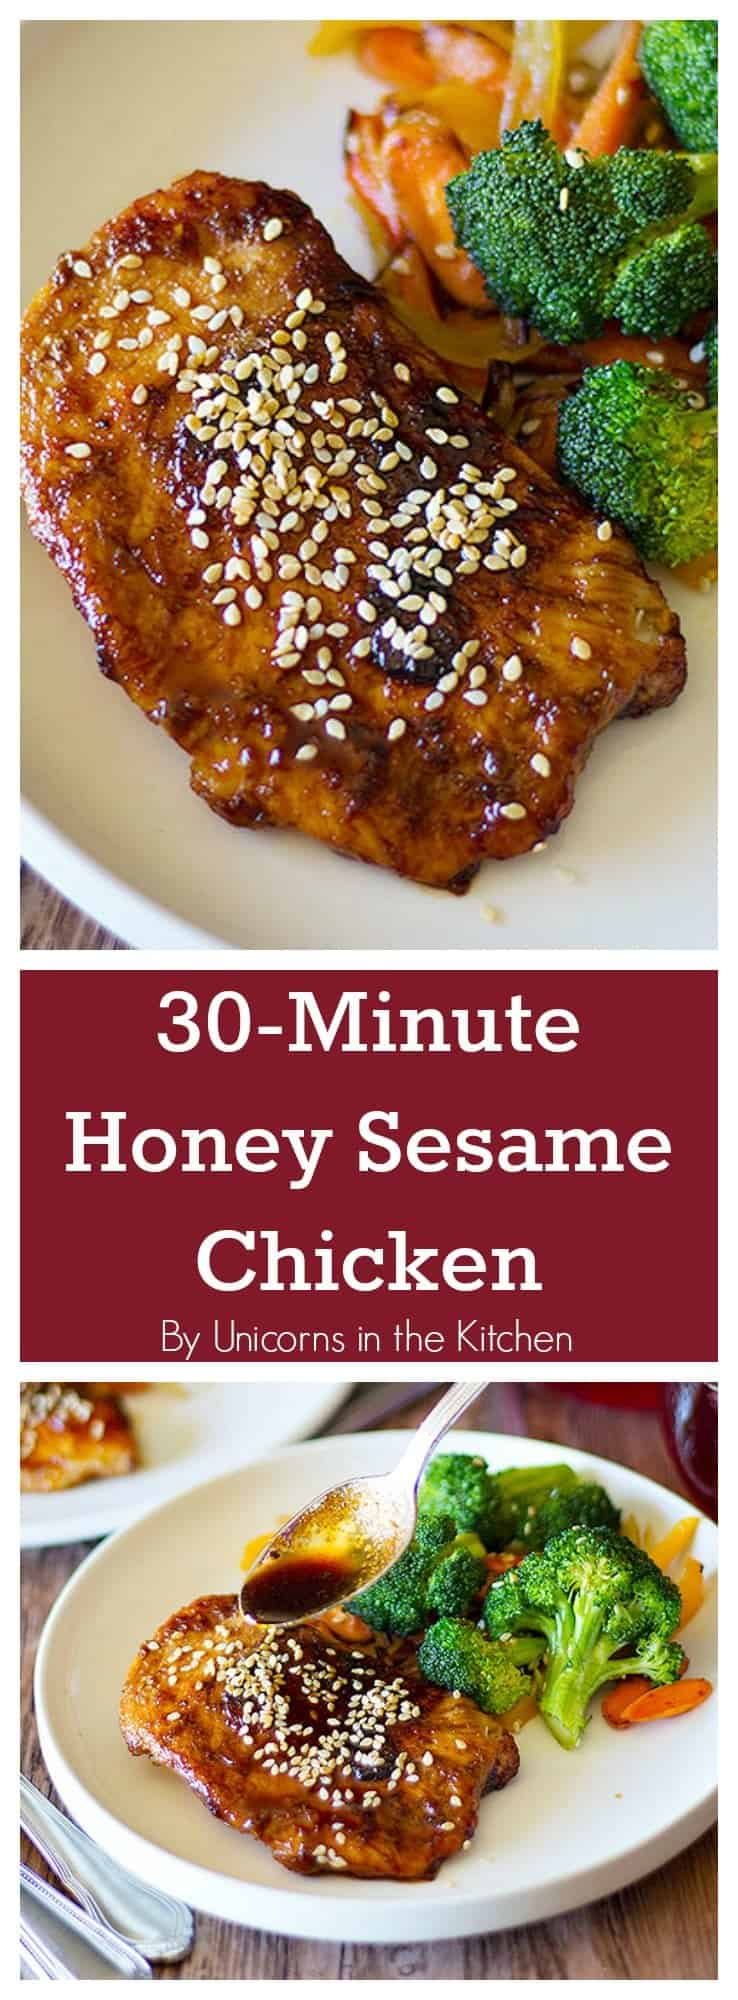 This 30-minute Honey Sesame Chicken is what you need for dinner tonight. It's made with ingredients that you already have in your pantry. Easy and no fuss!